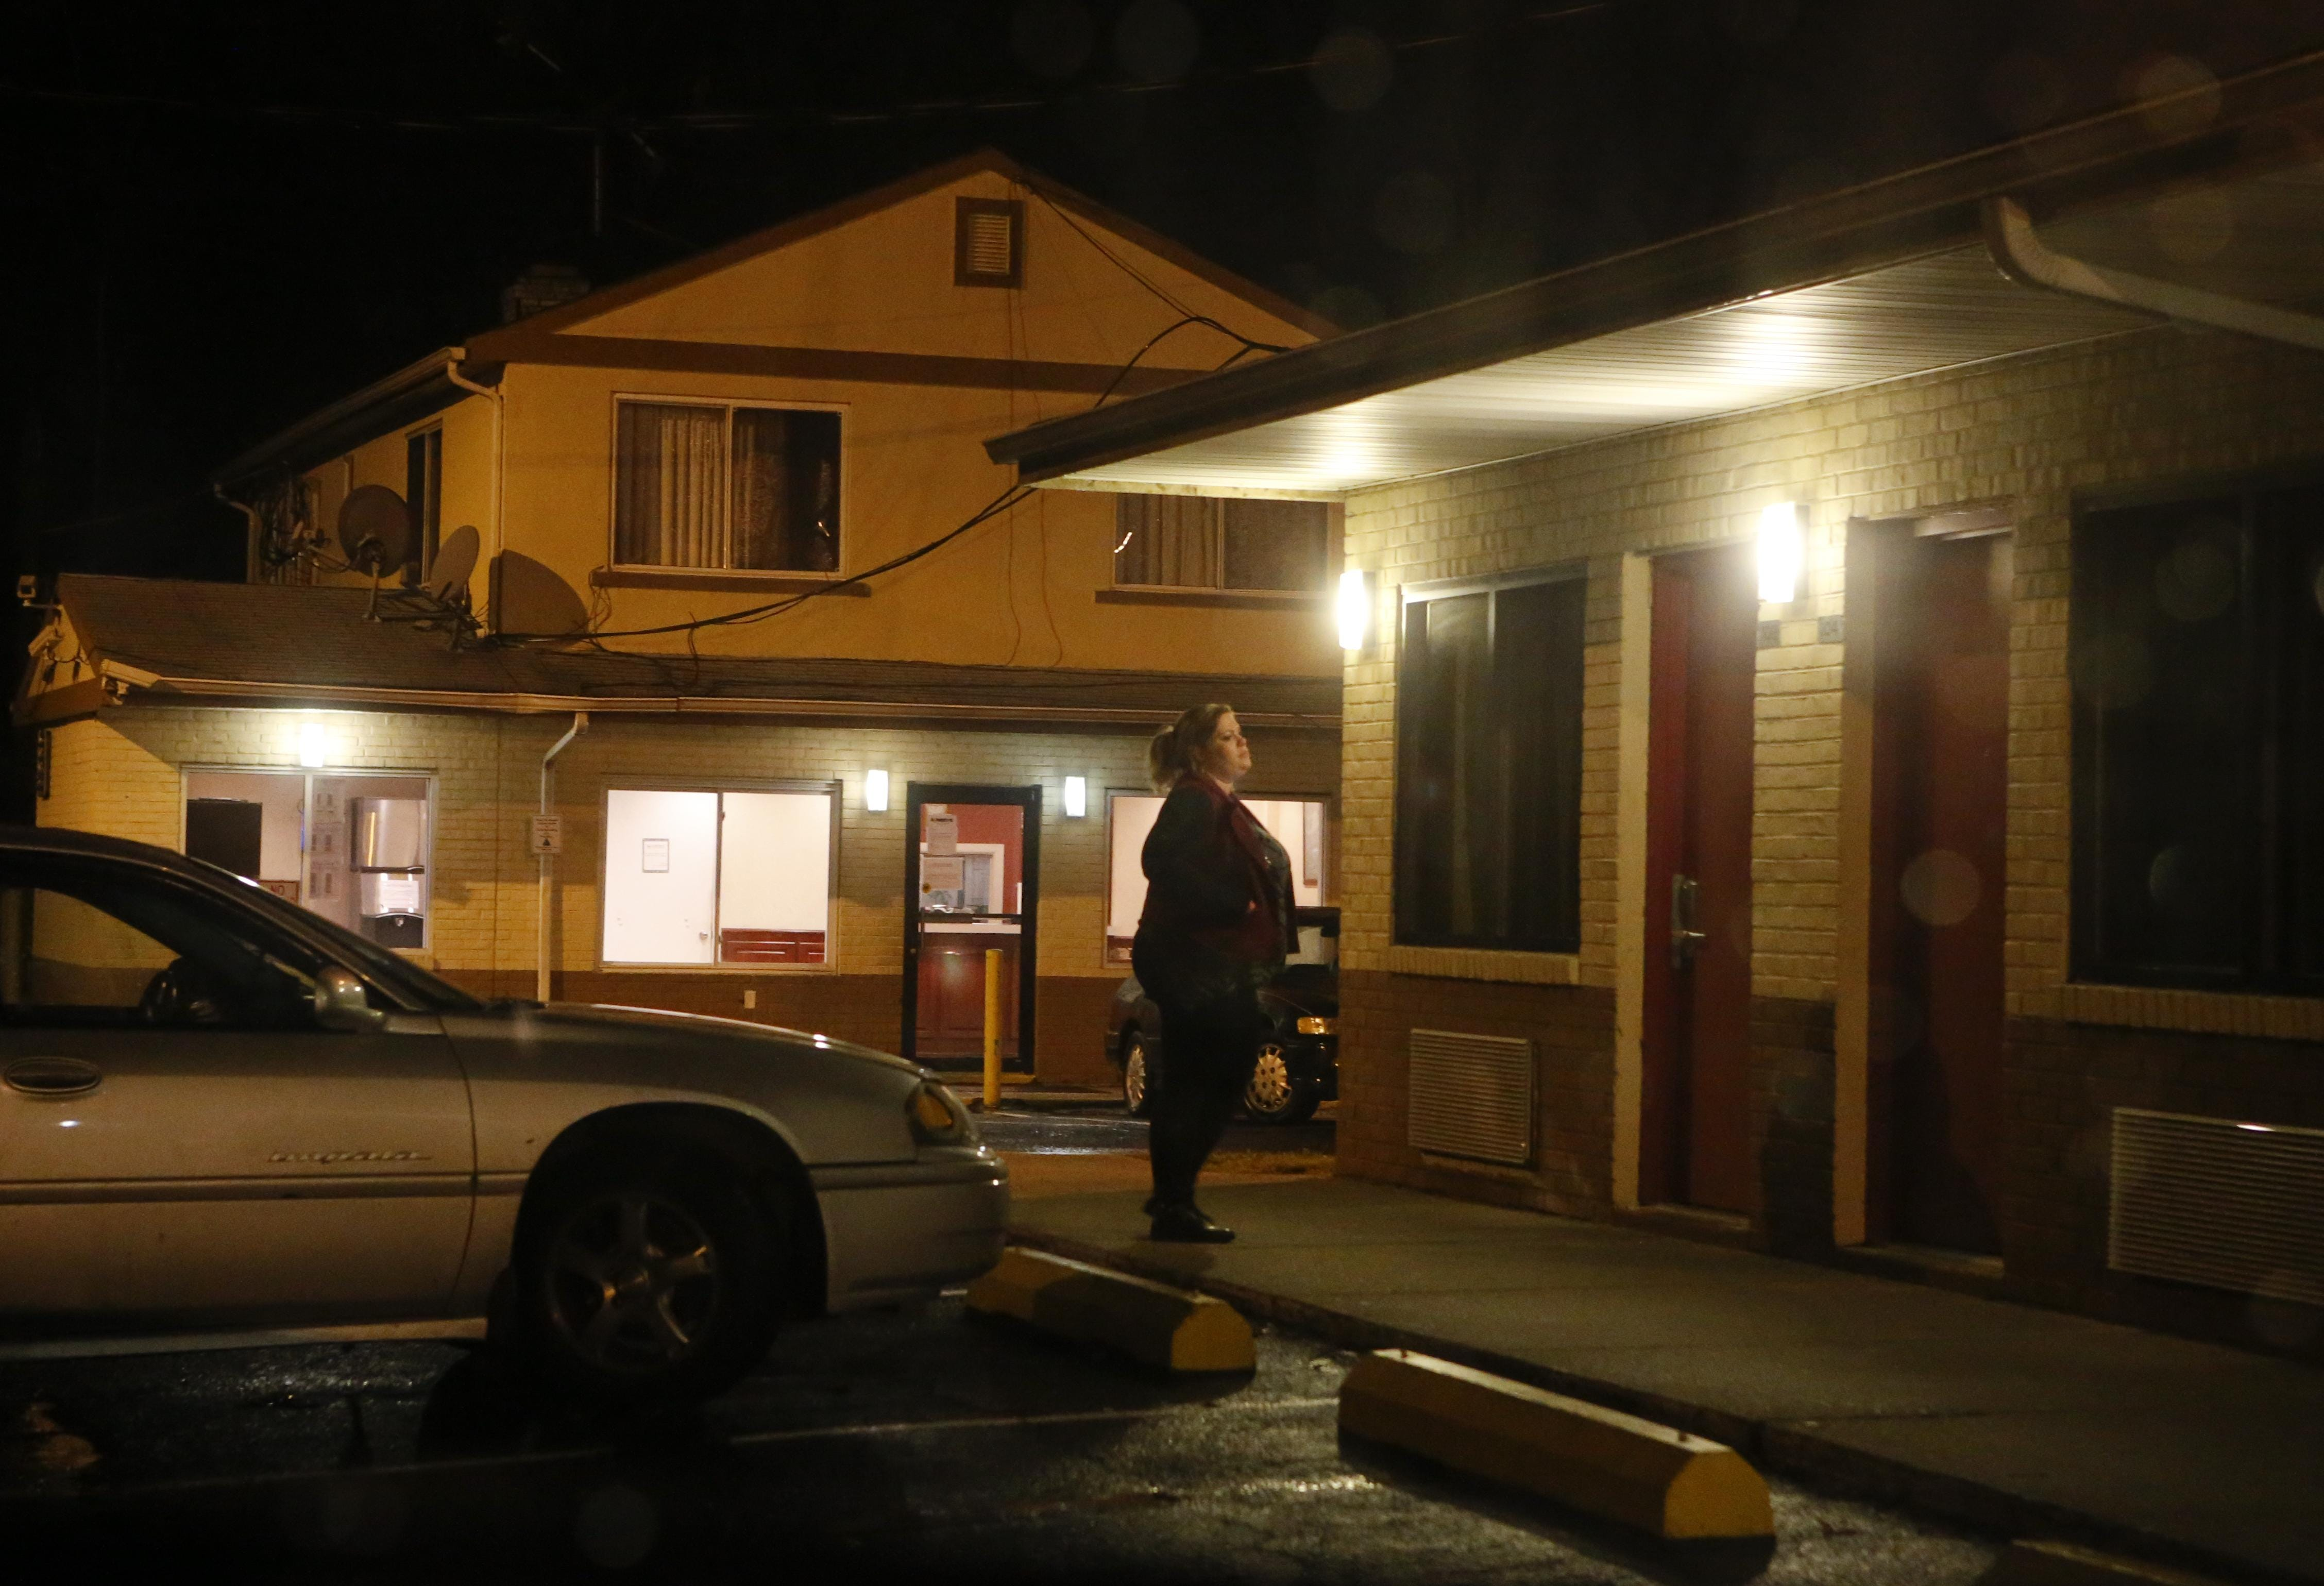 State moves to close Wilmington-area Fairview Inn on U.S. 13 for police calls, overdoses